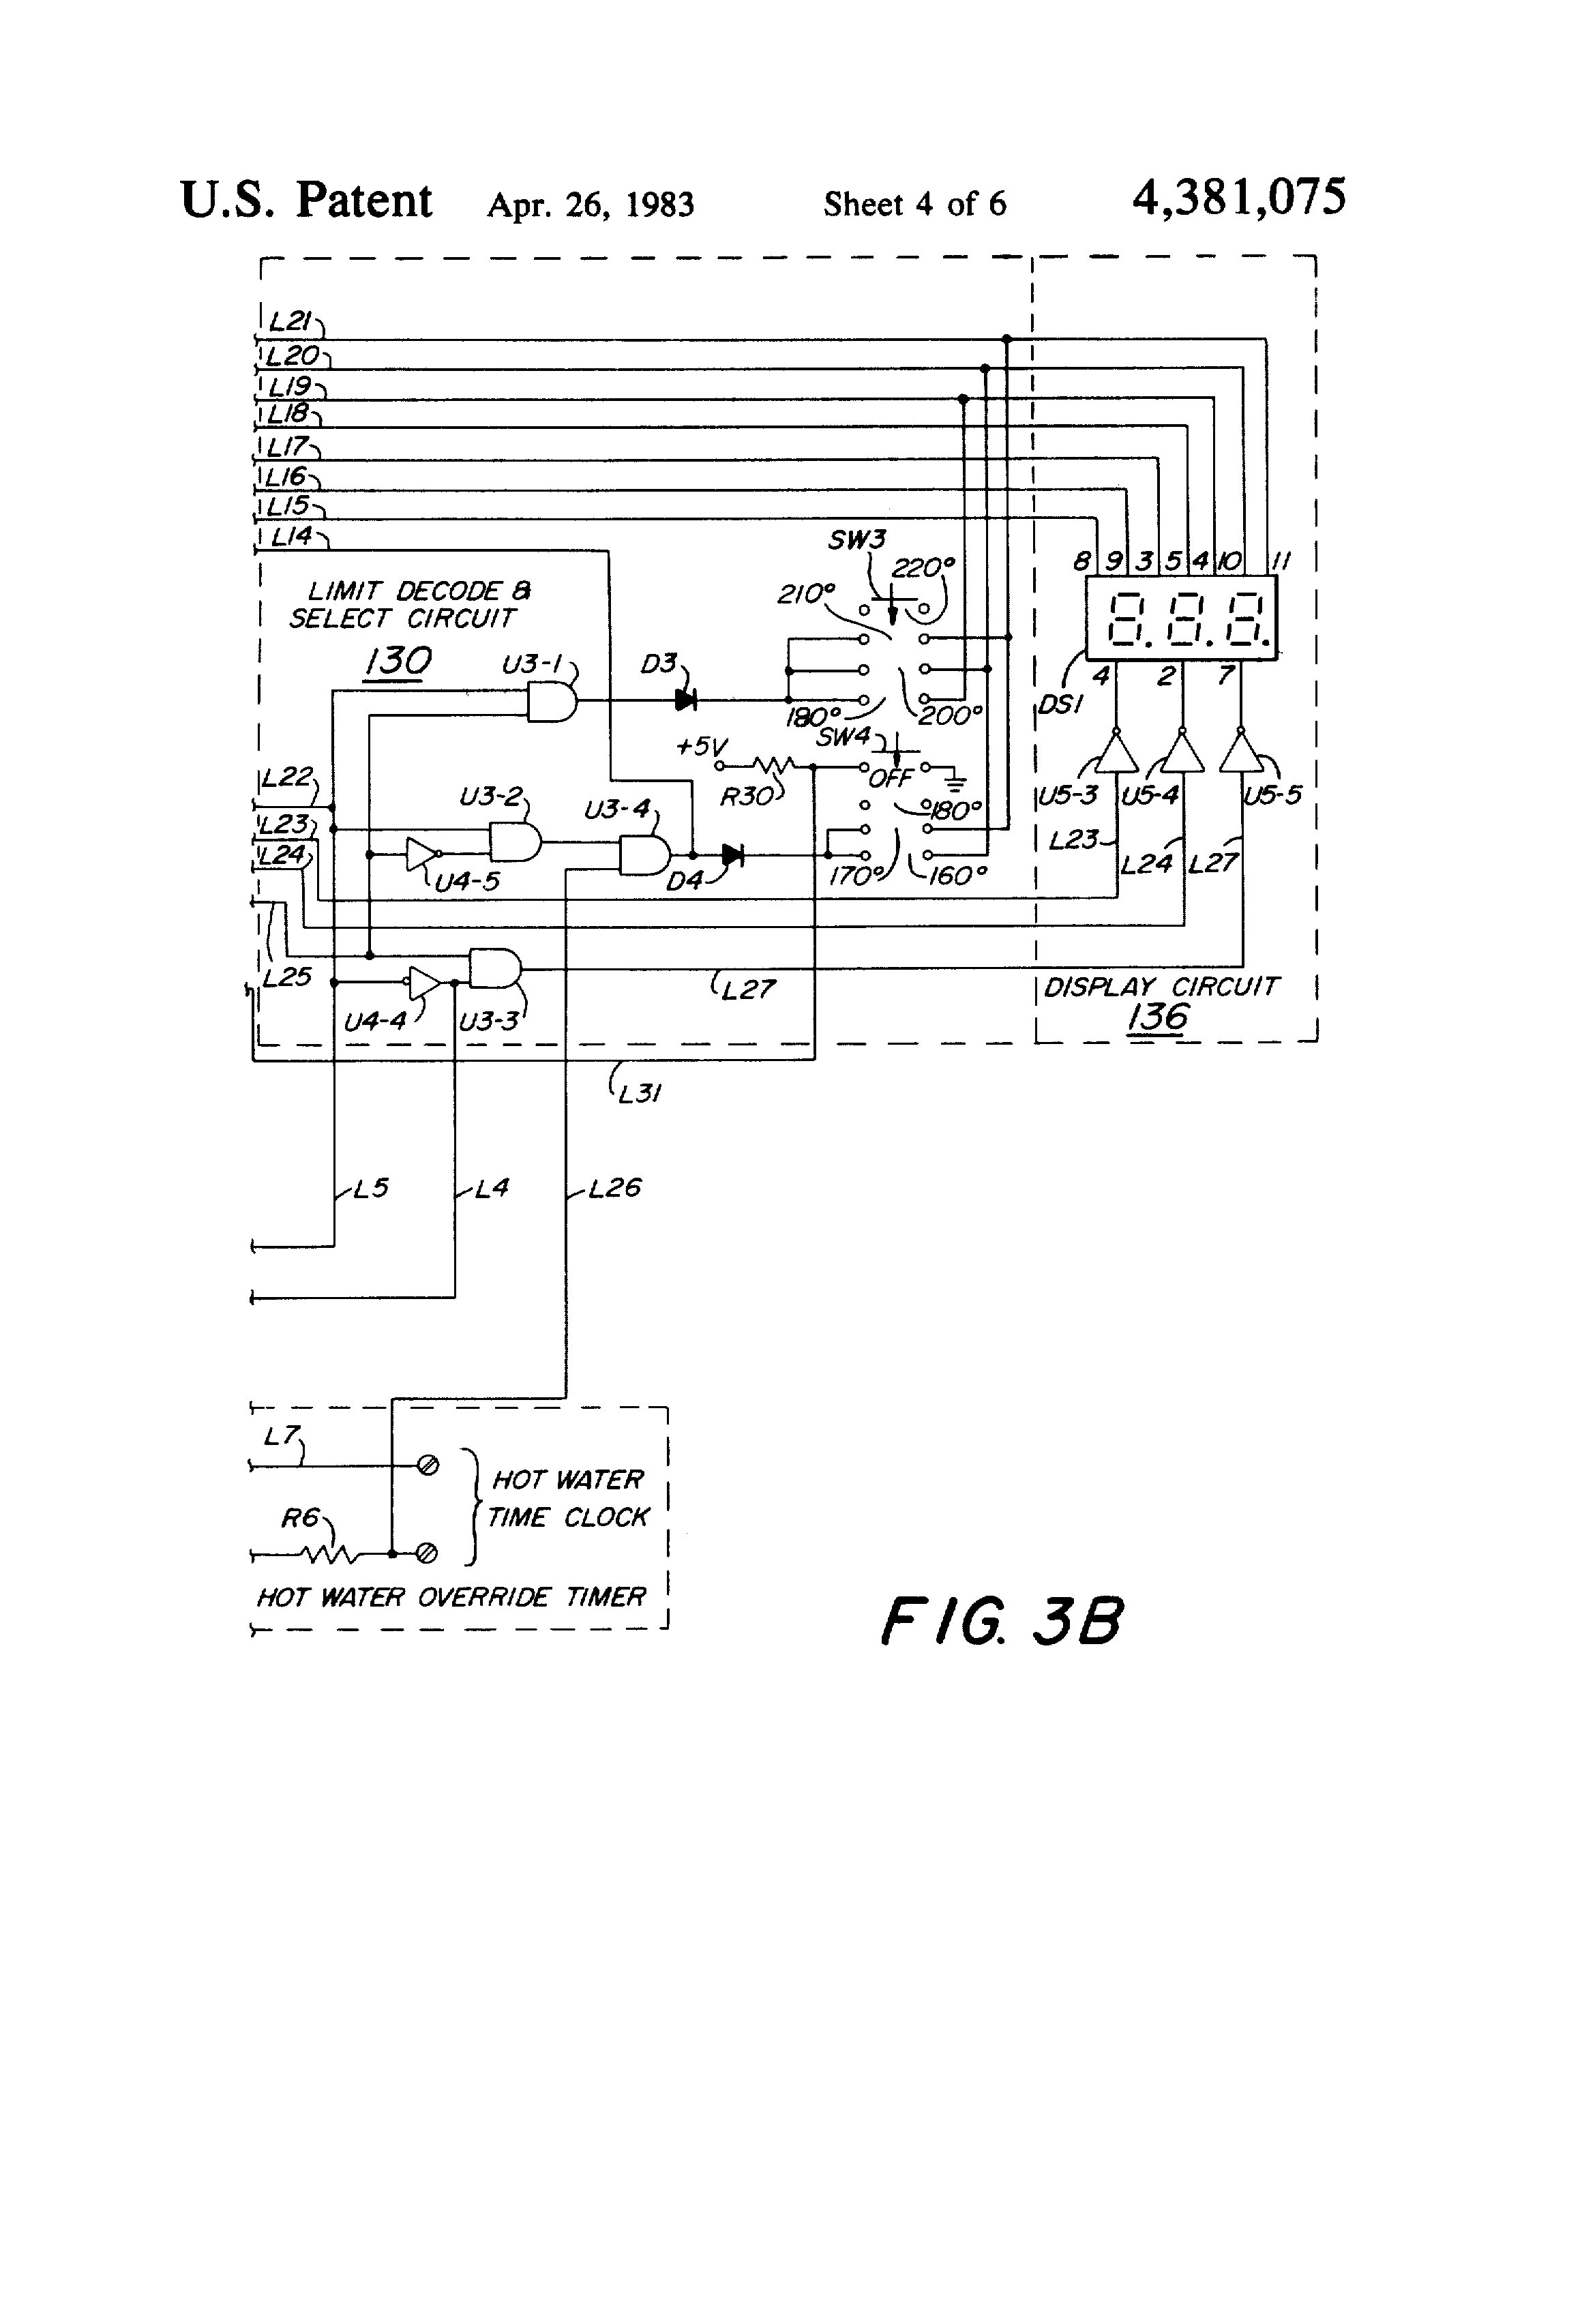 Microprocessor based controller for heating system   Patents #373737